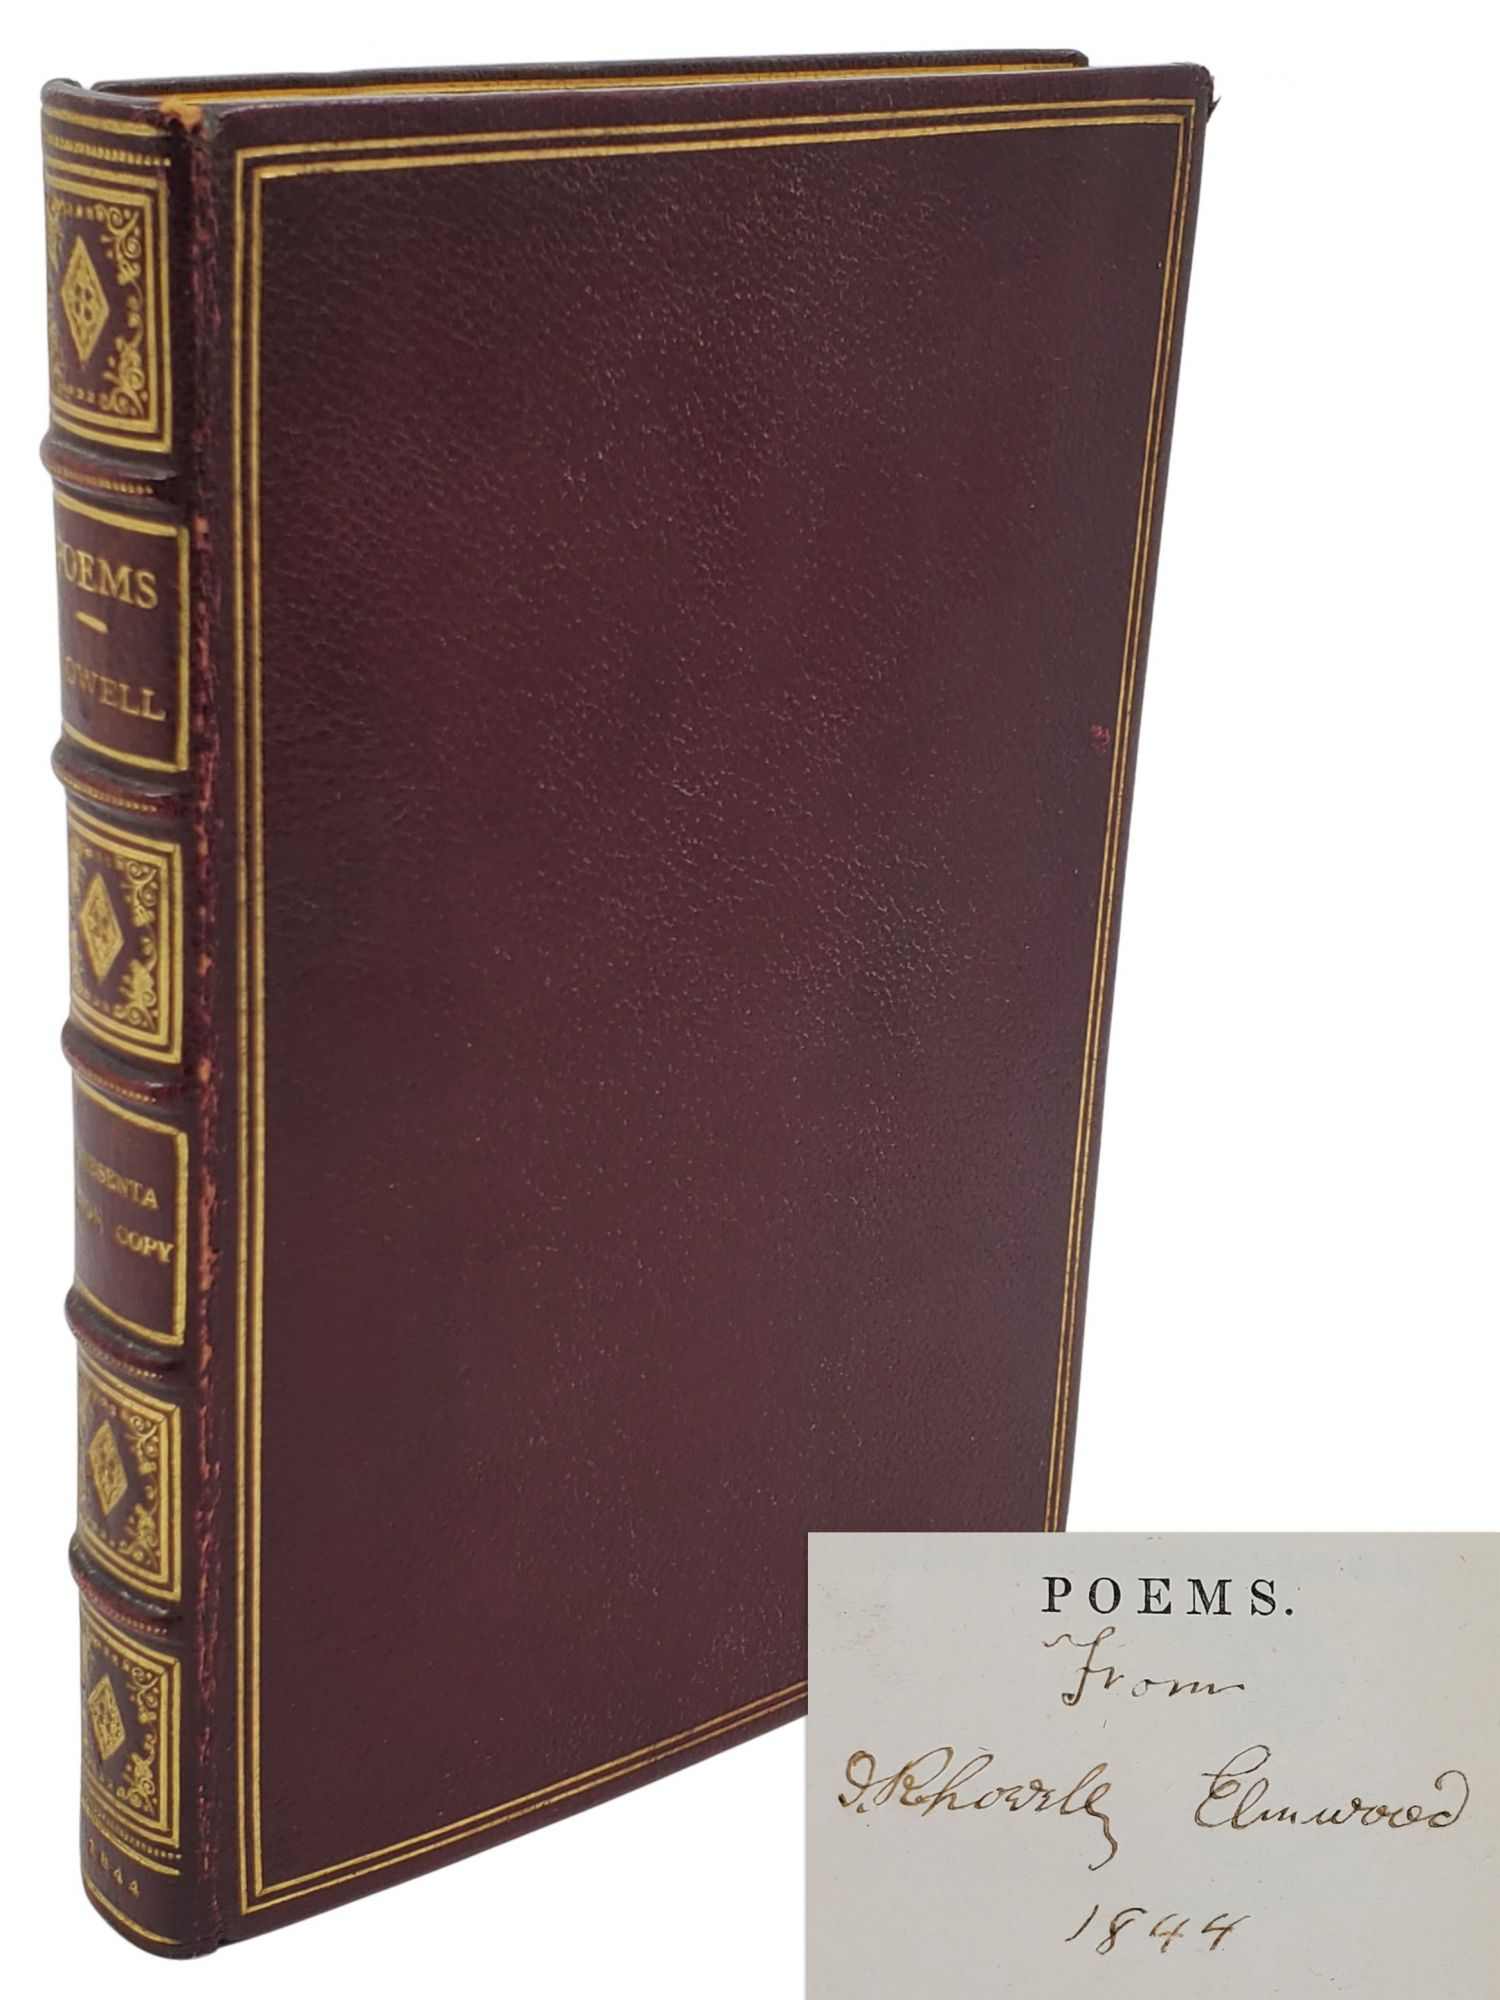 POEMS [INSCRIBED]. James Russell Lowell.